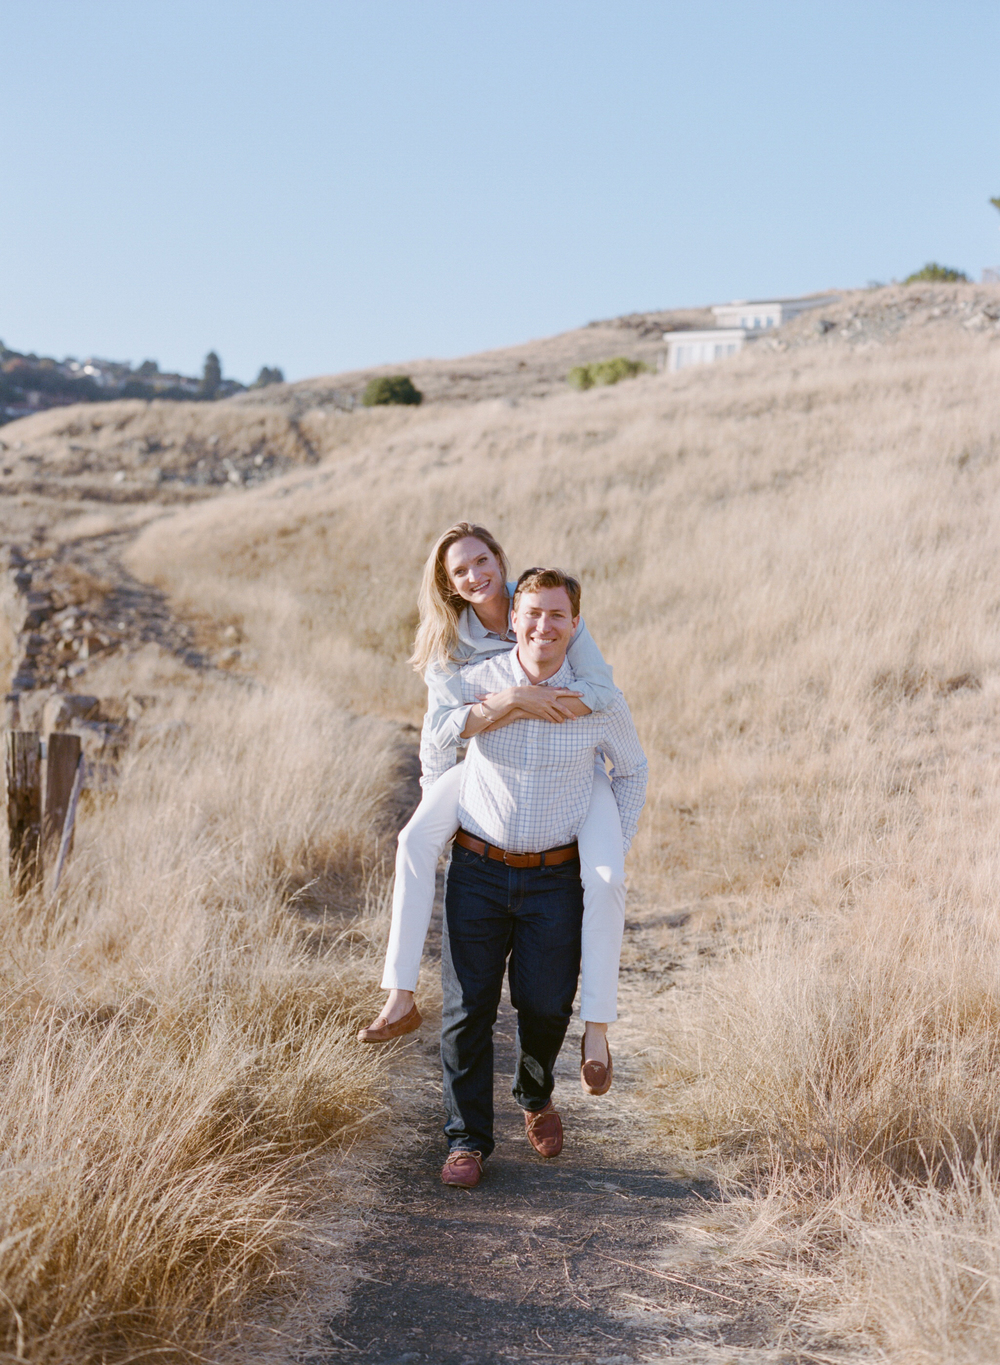 Man carries his fiancee in a piggyback ride through the hills of Tiburon  during an engagement session with Sylvie Gil.